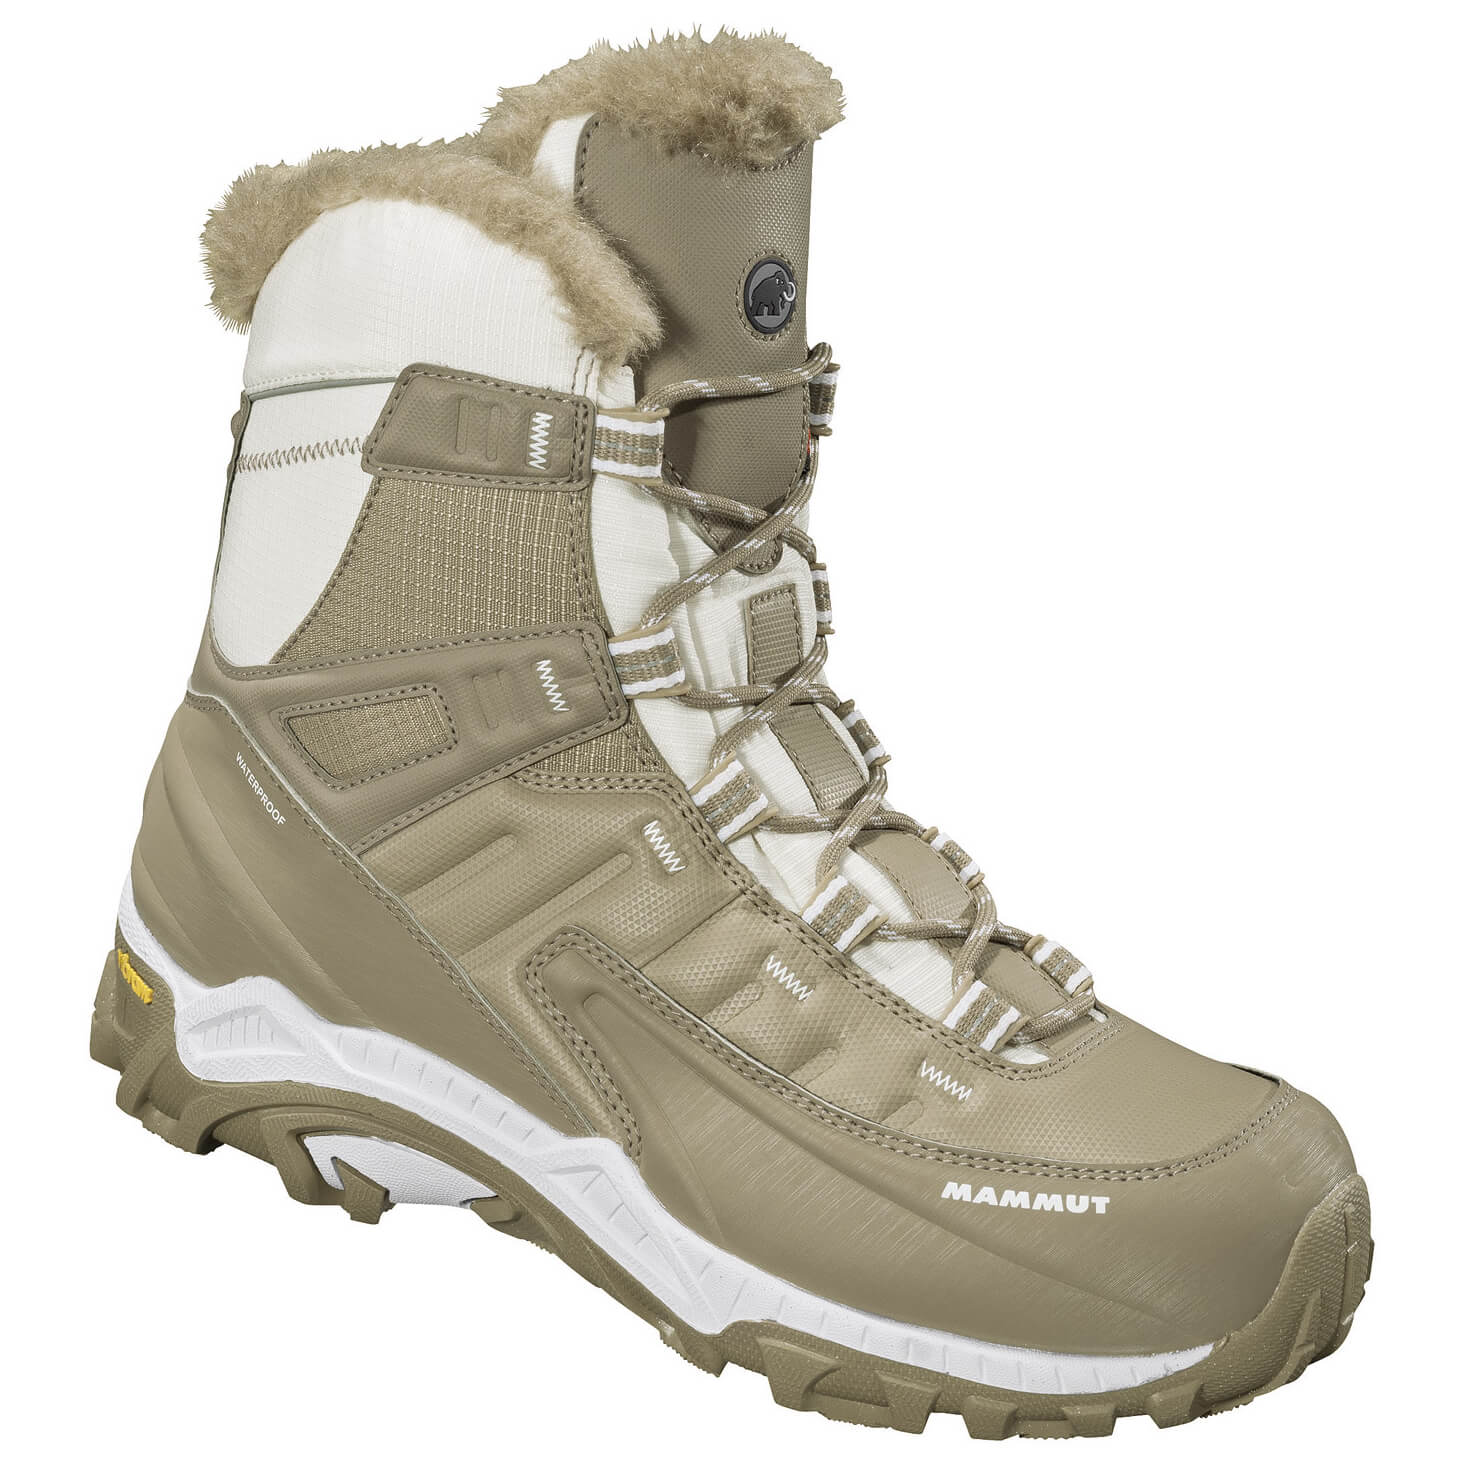 Mammut - Women s Blackfin II High WP - Winter boots 6527938626e